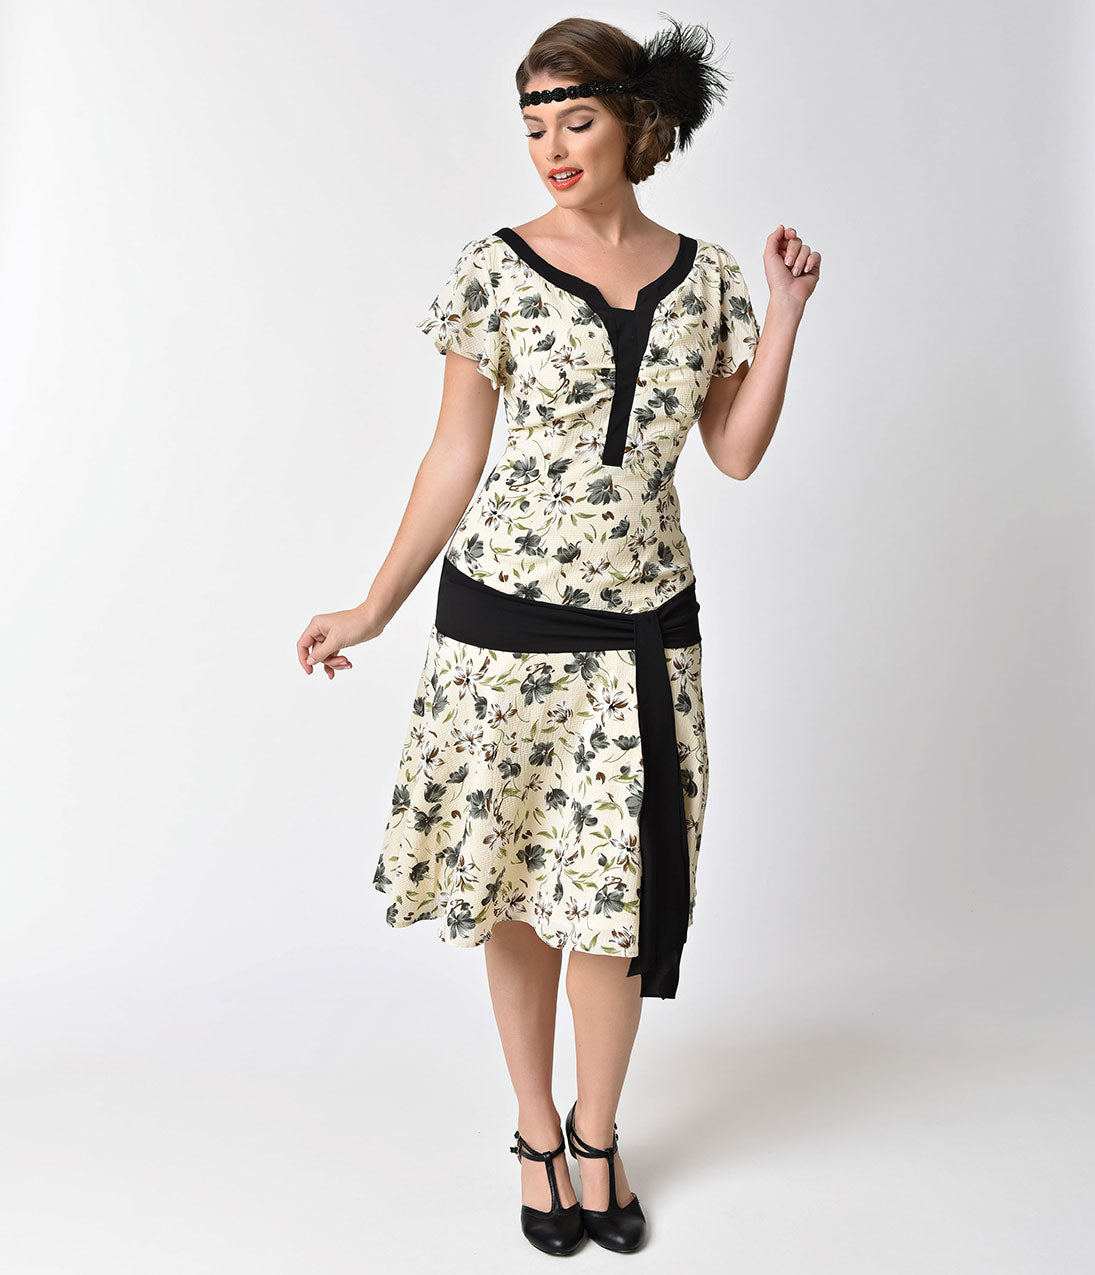 1920s Style Dresses, Flapper Dresses 1930s Style Cream & Floral Ridley Flapper Day Dress $47.00 AT vintagedancer.com